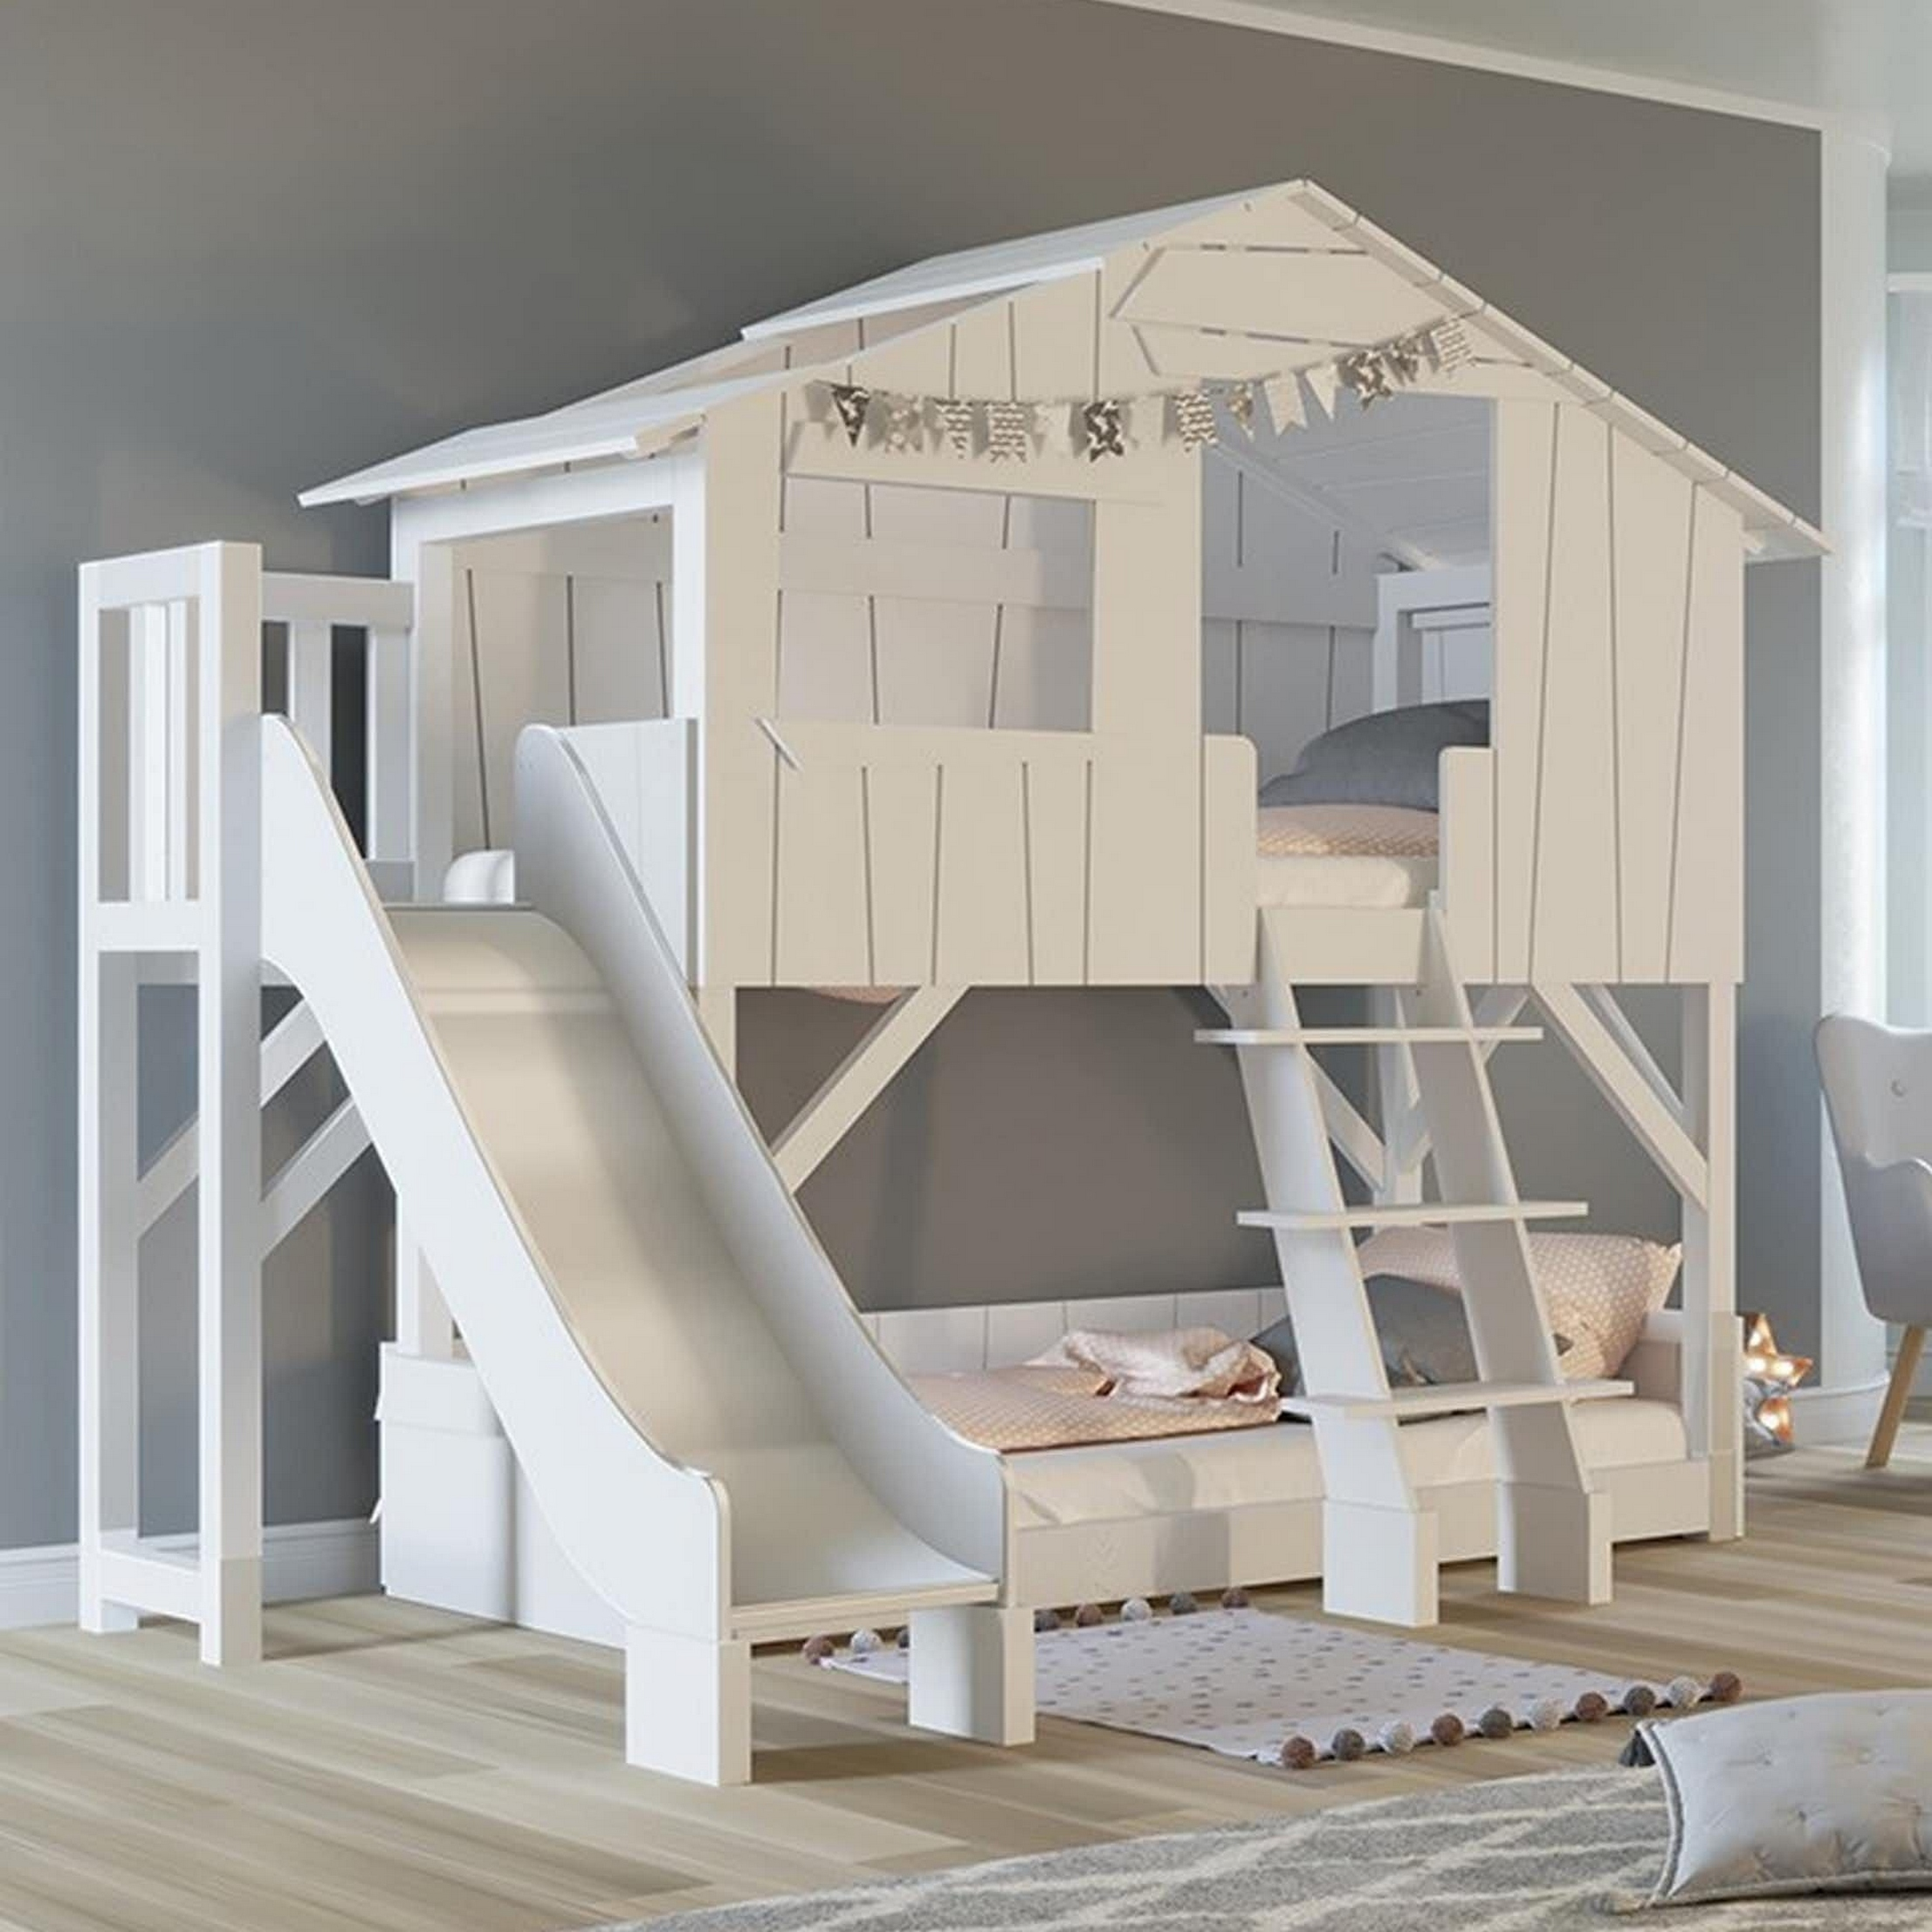 31 Top Choices Bunk Beds For Kids Design Ideas Tips For Choosing It 9